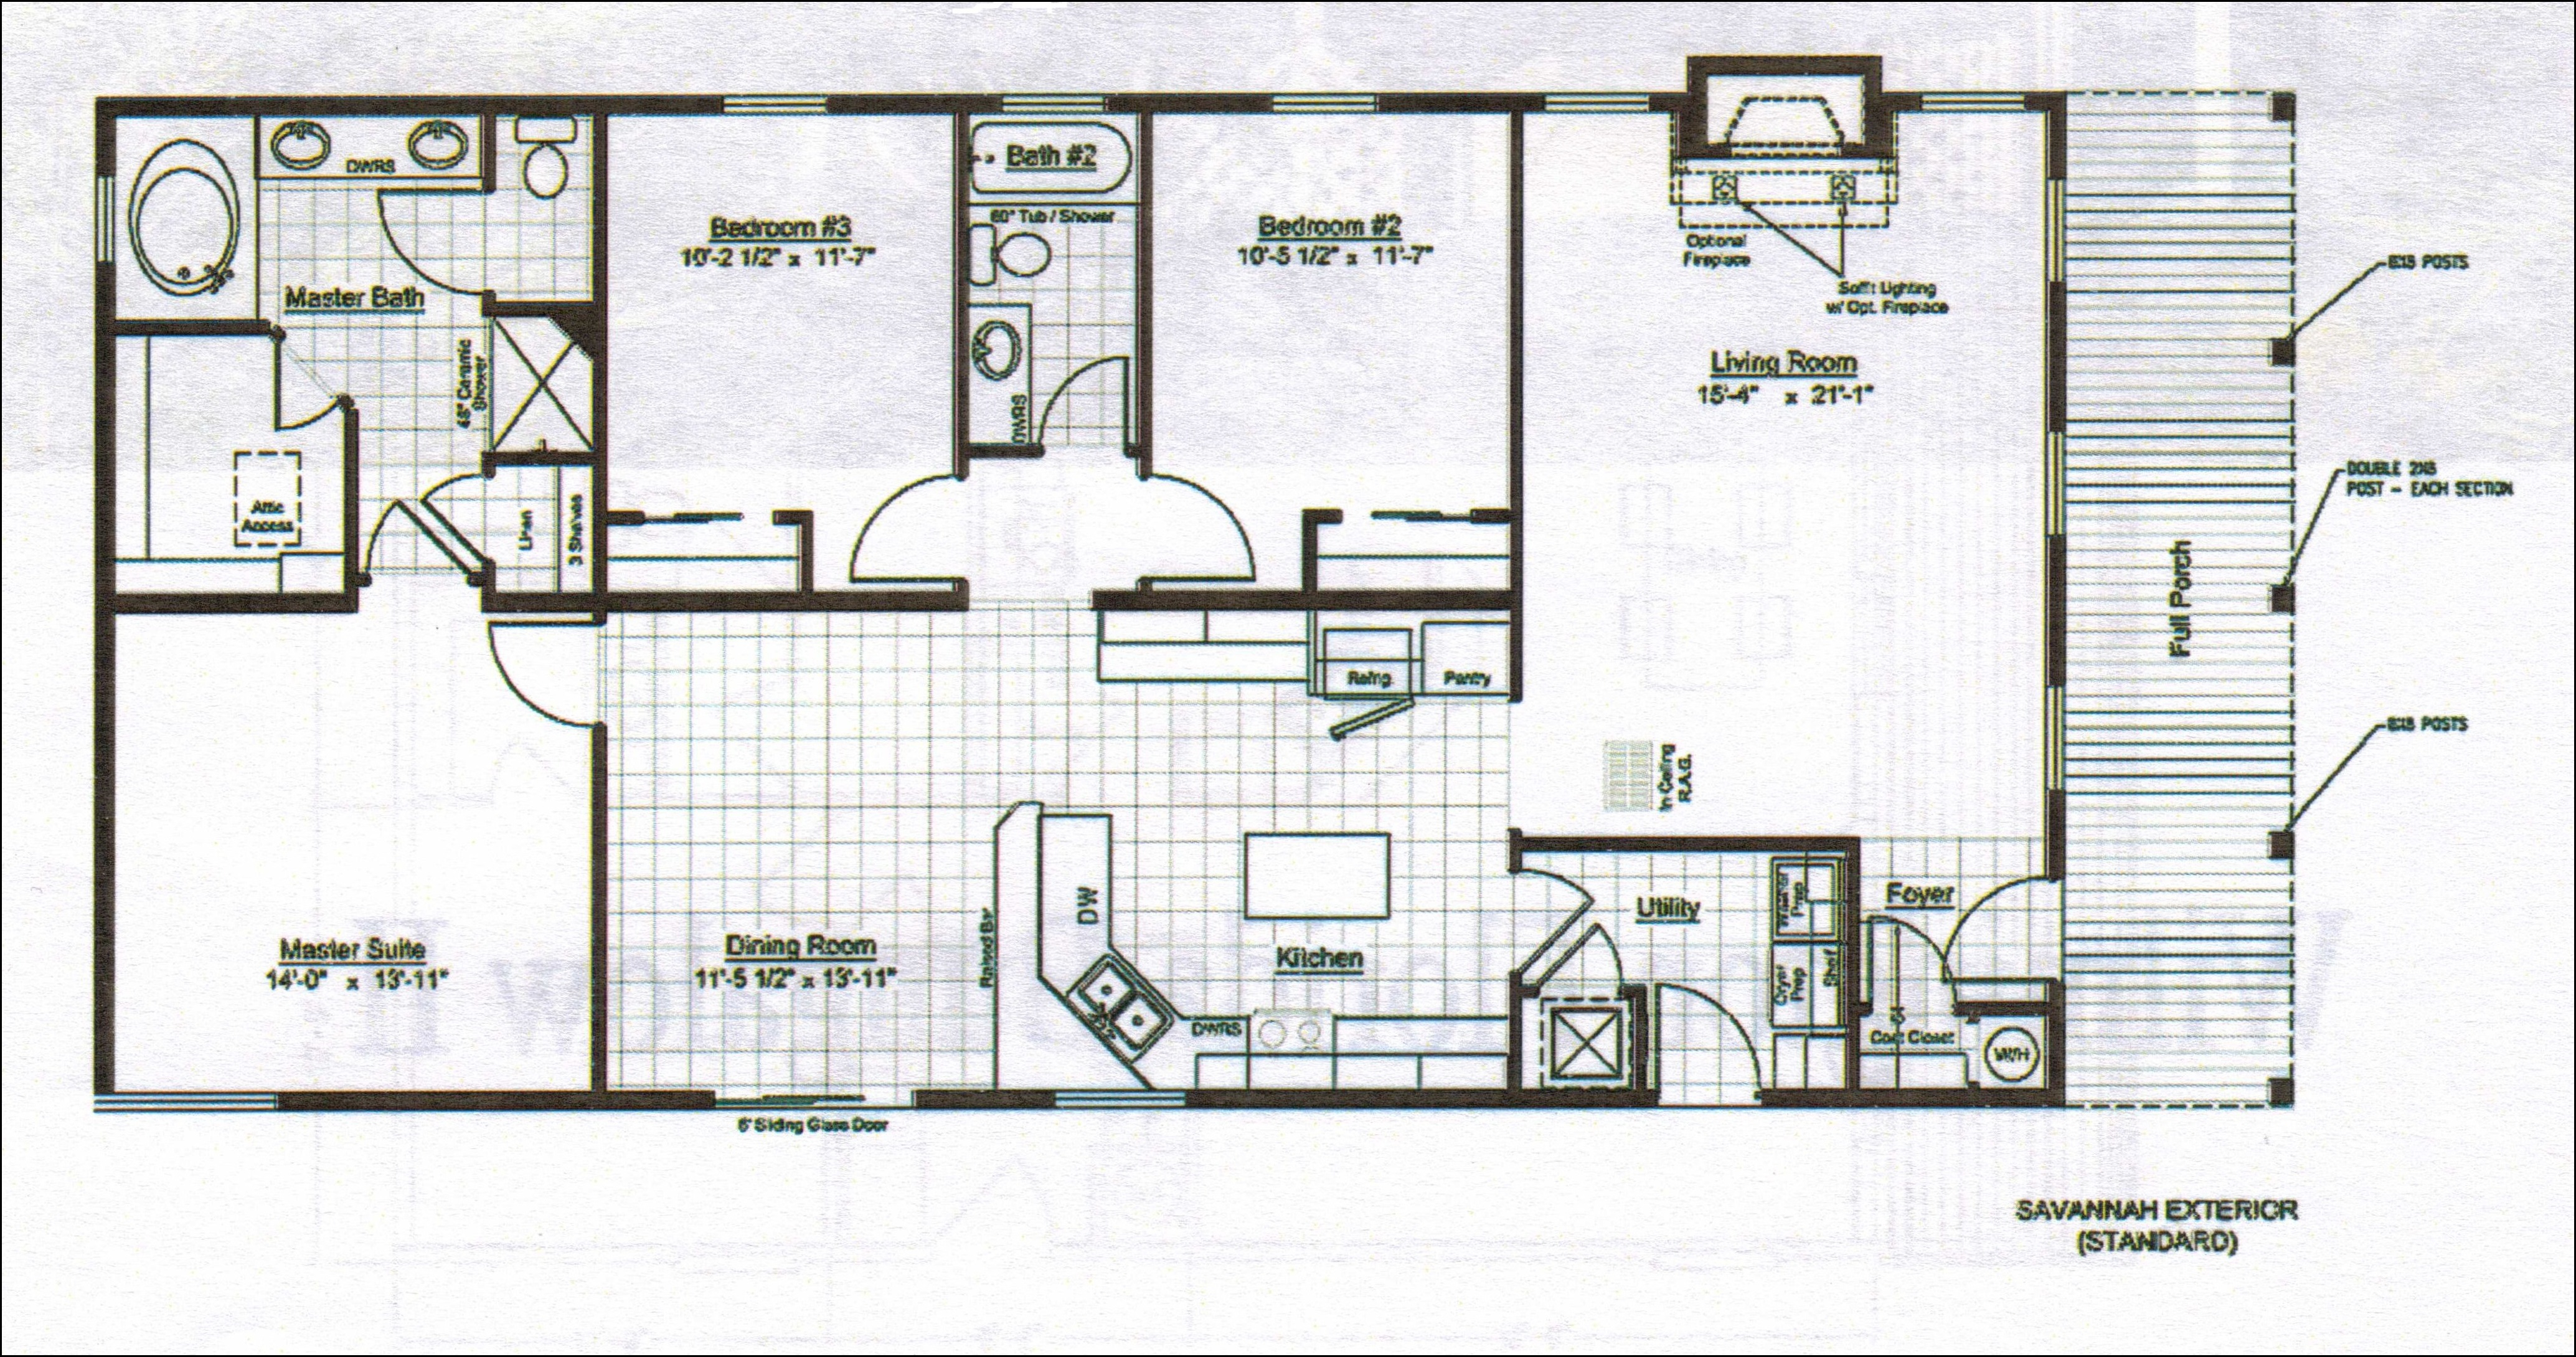 2 Bedroom House Designs Photographs Bungalow Plans Floor Plan With on one level beach house plans, modern one level house plans, beautiful one story house plans, open pool house plans, open contemporary house plans, best one story house plans, open basement house plans, large one story house plans, one level modular home plans, large single level home plans, retirement one level home plans, one story duplex house plans, one level desert home plans, open kitchen house plans, open small house plans, open plan house designs, open great room house plans, open concept house plans, small one level house plans, simple one level home plans,